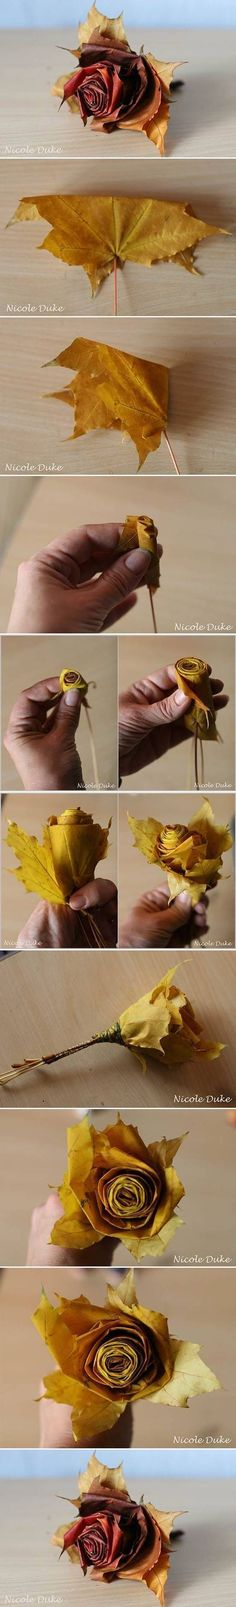 How to Make Beautiful Maple Leaf Rose #craft #leaf #decorating: